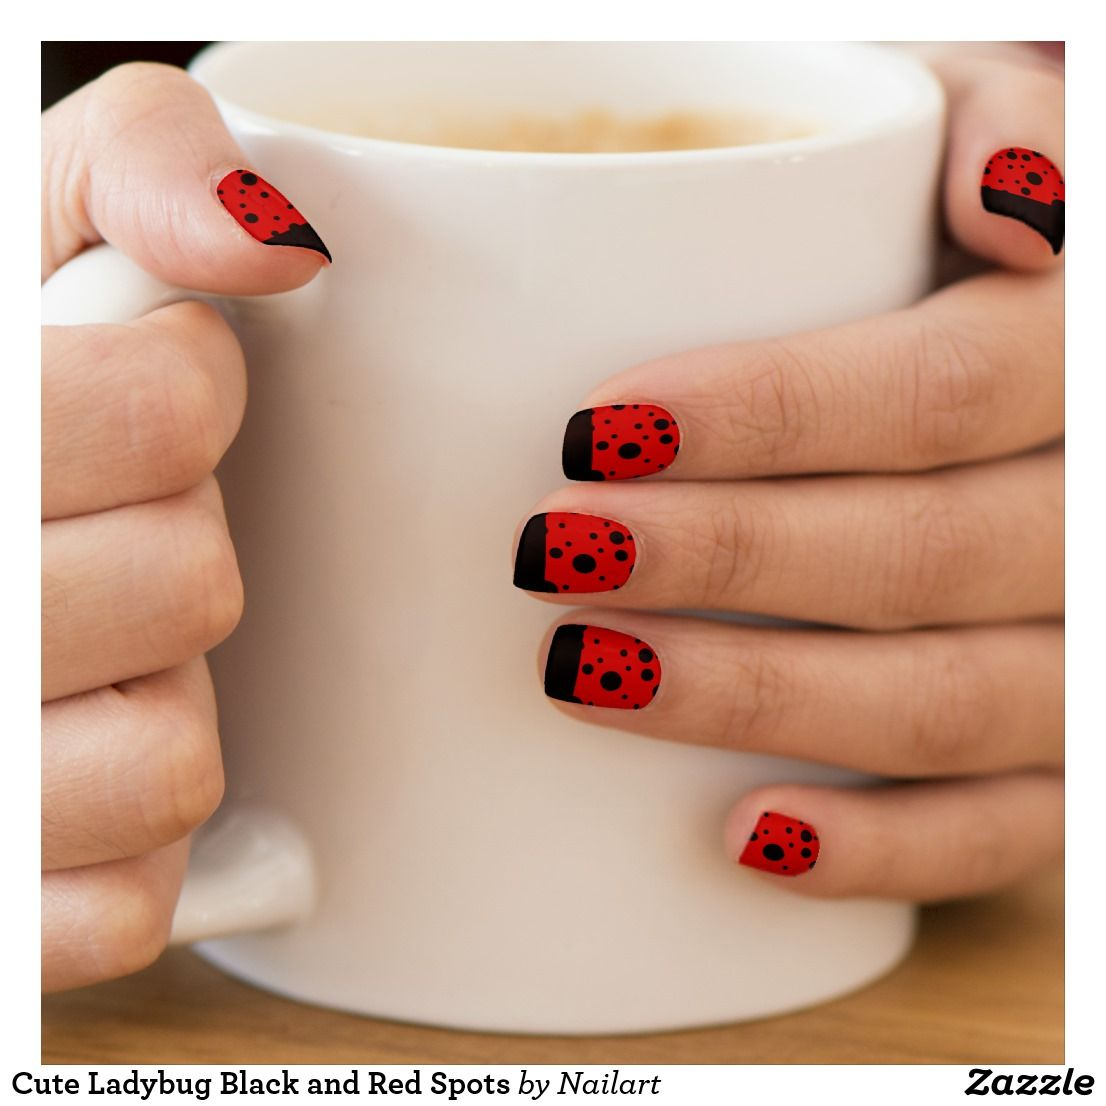 Cute Ladybug Black and Red Spots Minx Nail Art | Zazzle.com